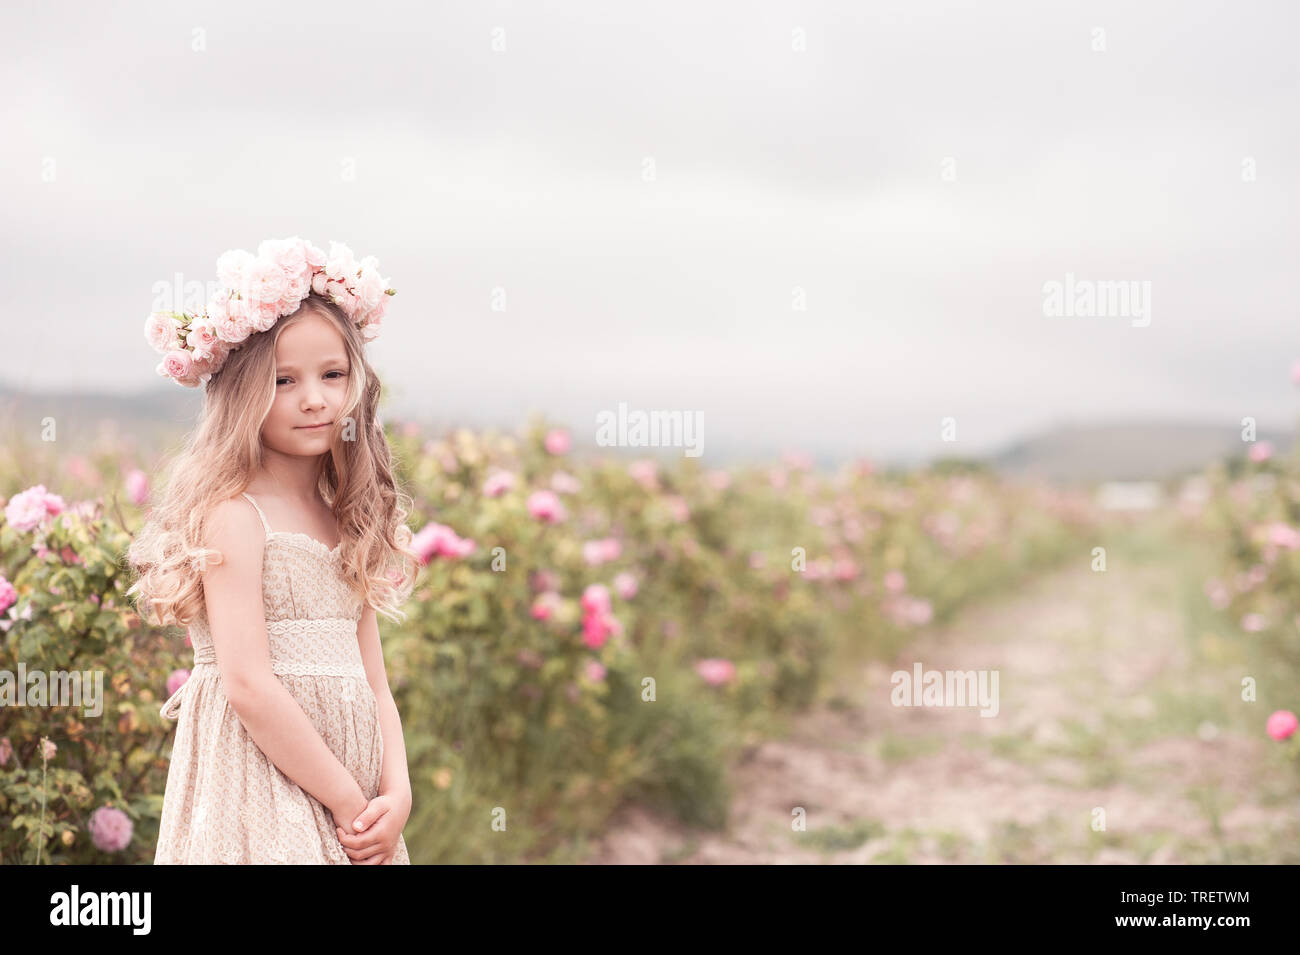 1e85d9bb6 Smiling kid girl 4-5 year old posing in rose garden wearing stylish dress  and